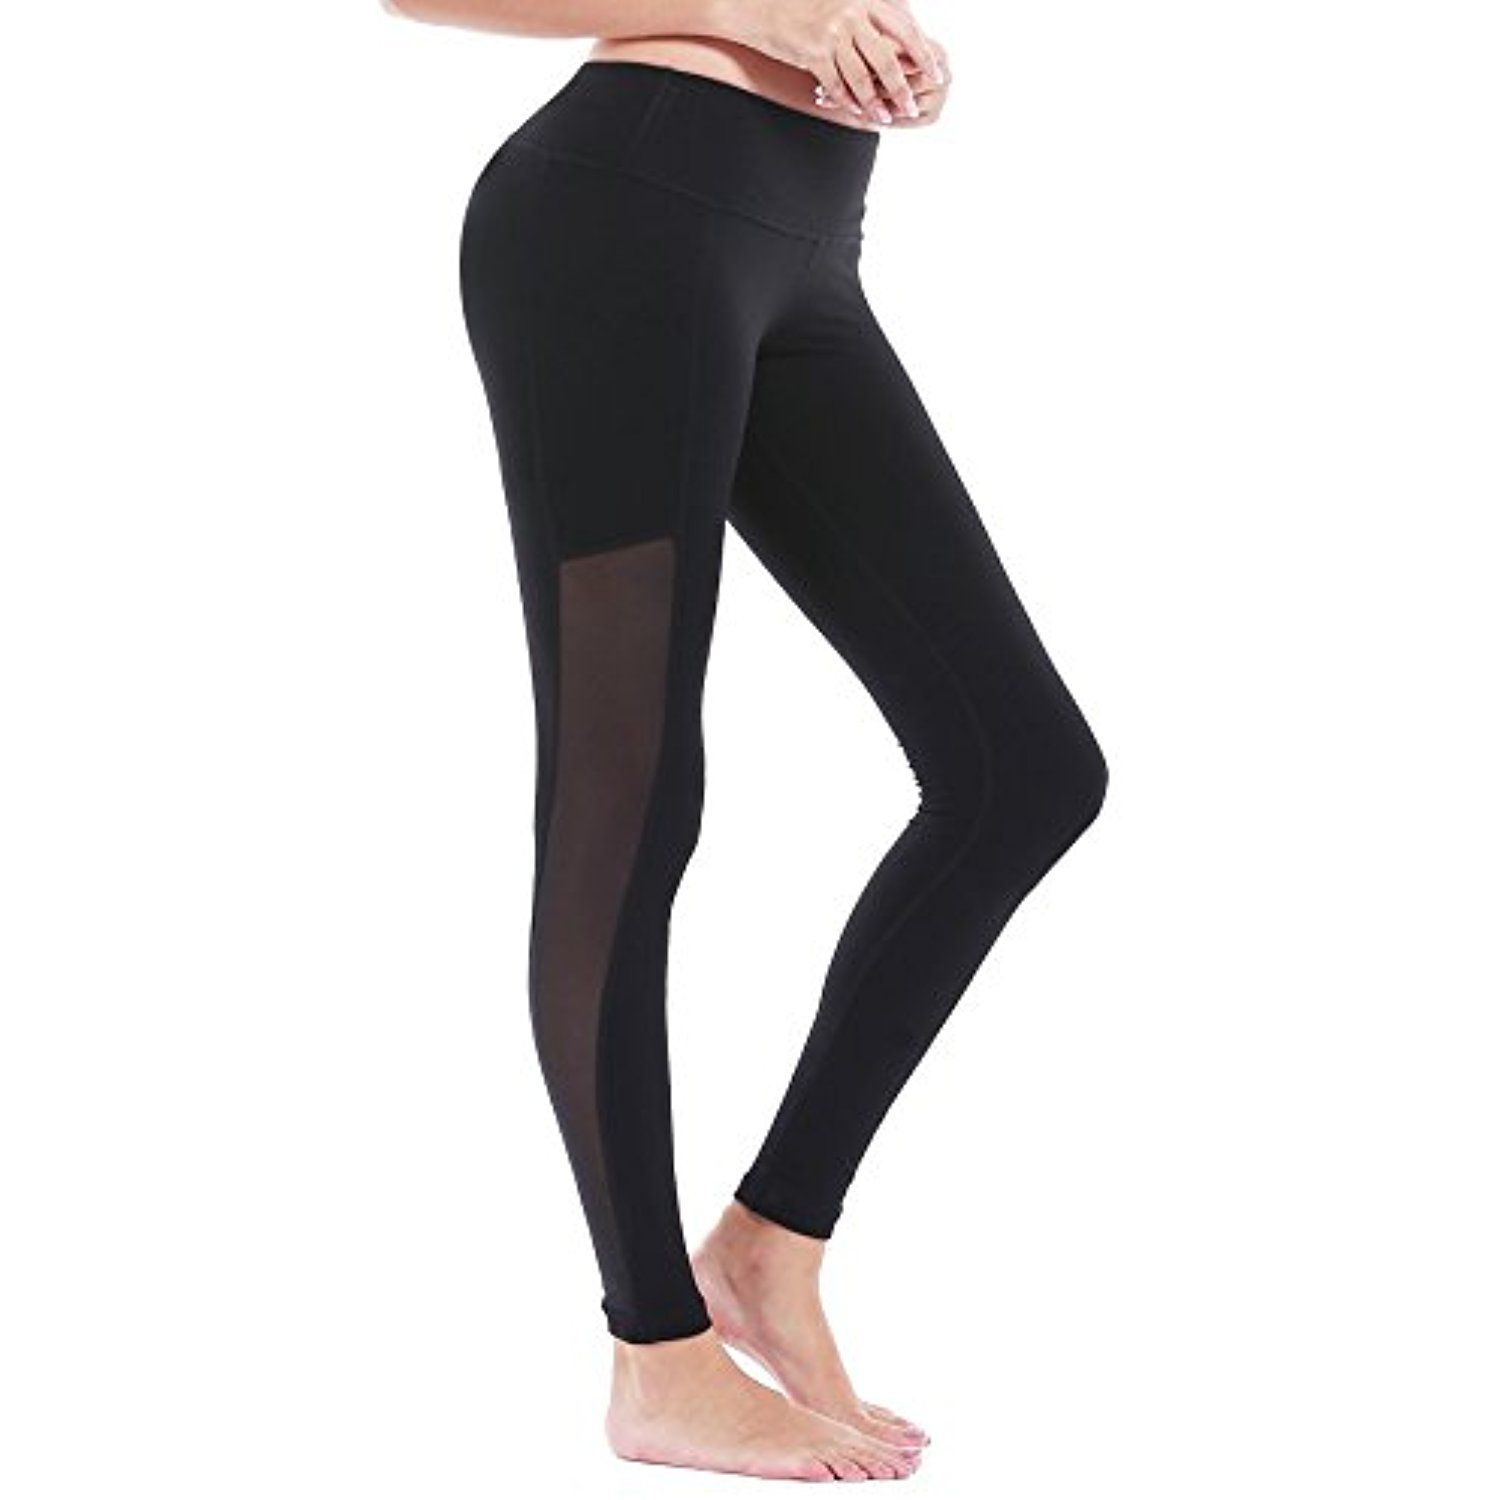 fade8cd66a546b DeepTwist Women's High Waist Yoga Pants Tummy Control Running Tights Active  Power Stretch Workout Leggings * Click on the image for additional details.